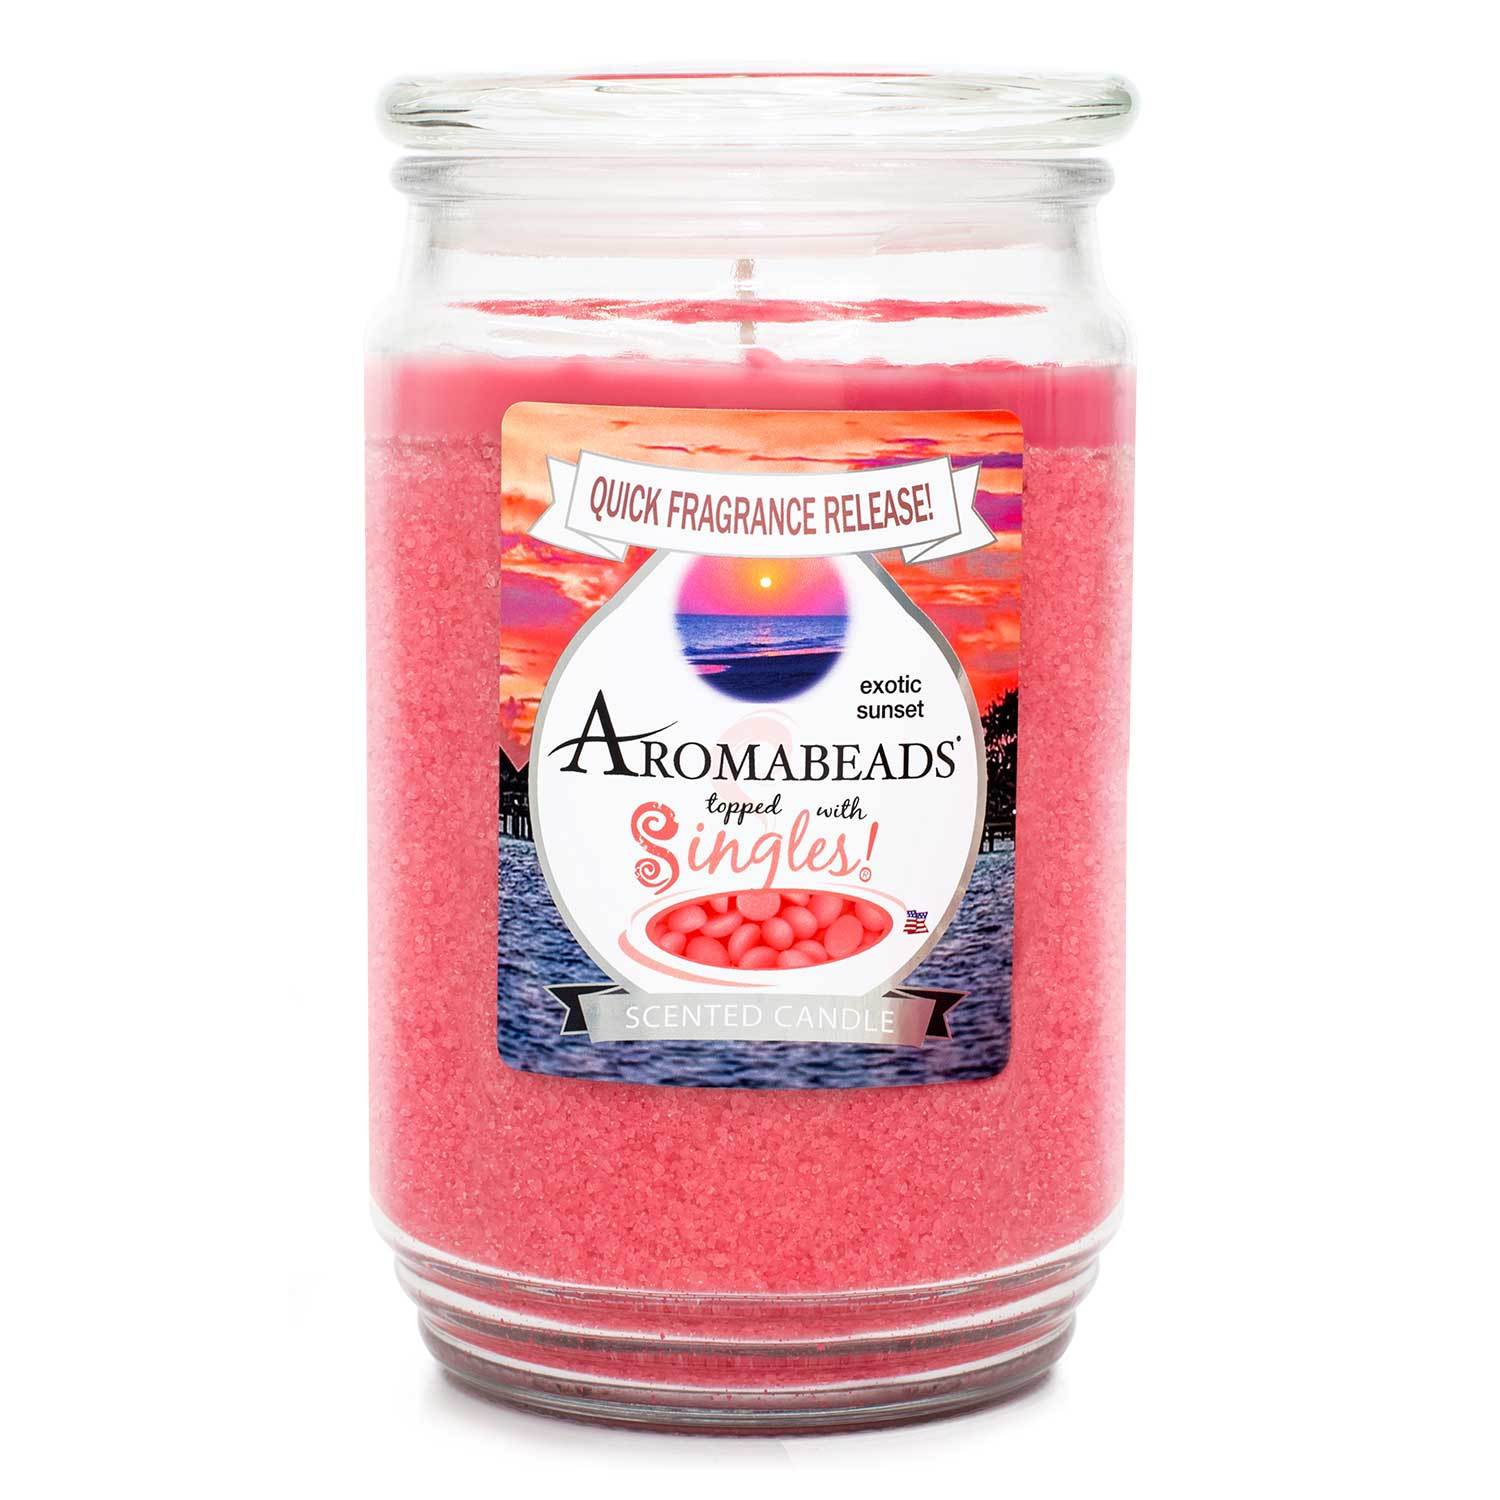 Aromabeads Exotic Sunset Scented Candle Aromabeads Candlemart.com $ 9.99